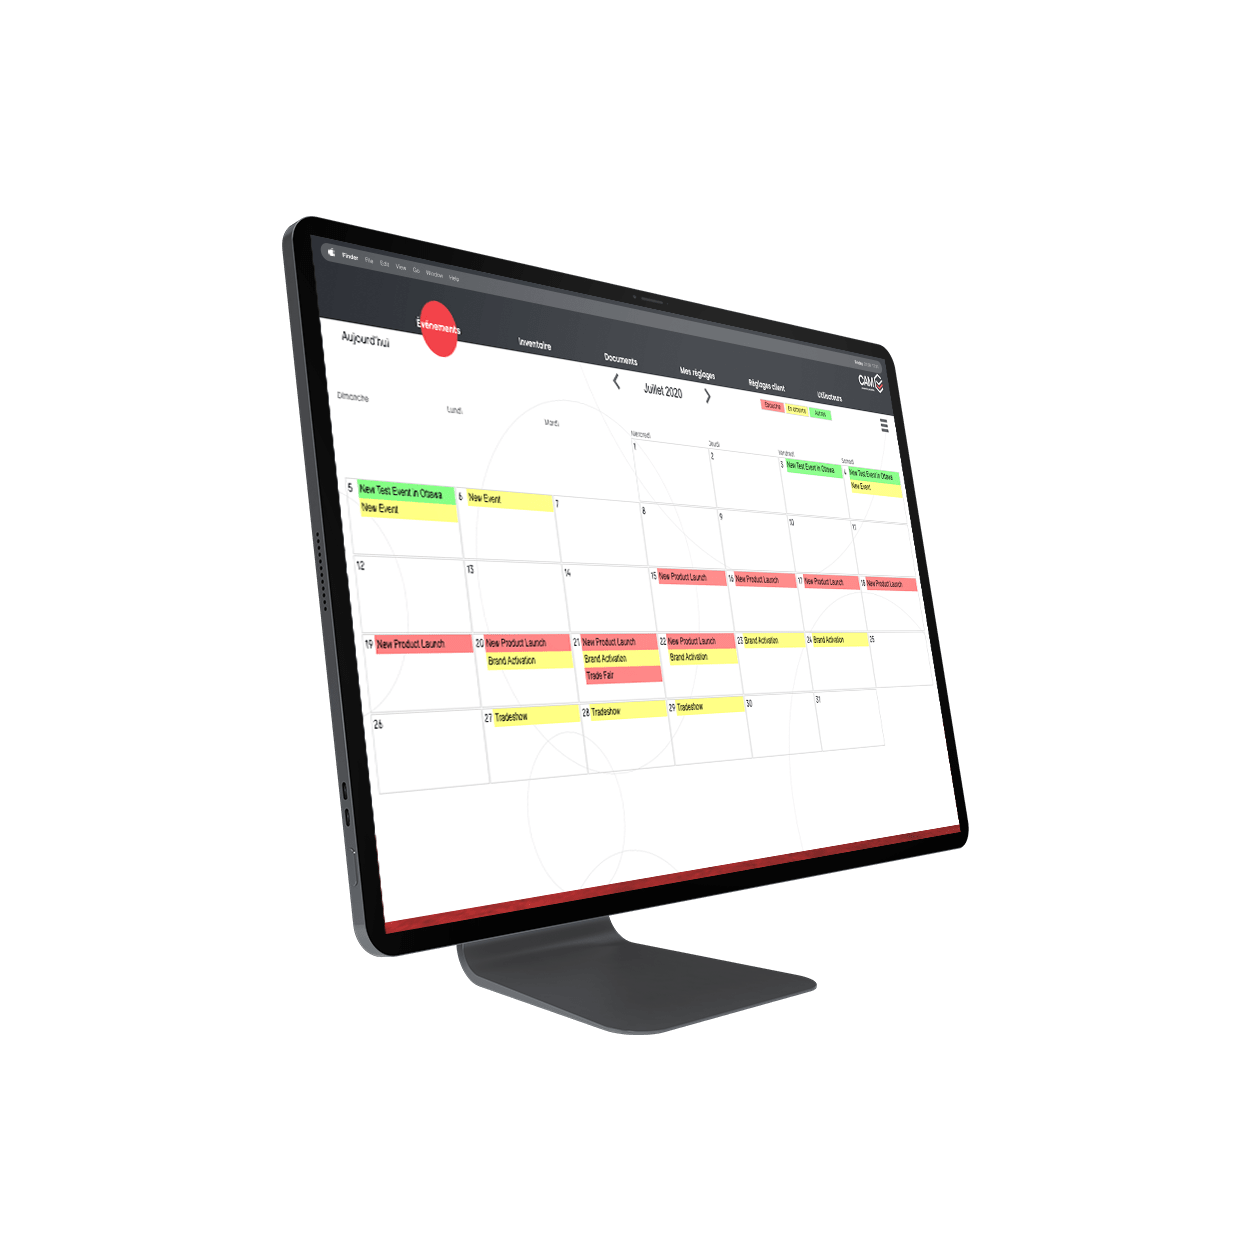 Monitor mockup of CAM an online asset management tool made by accordex